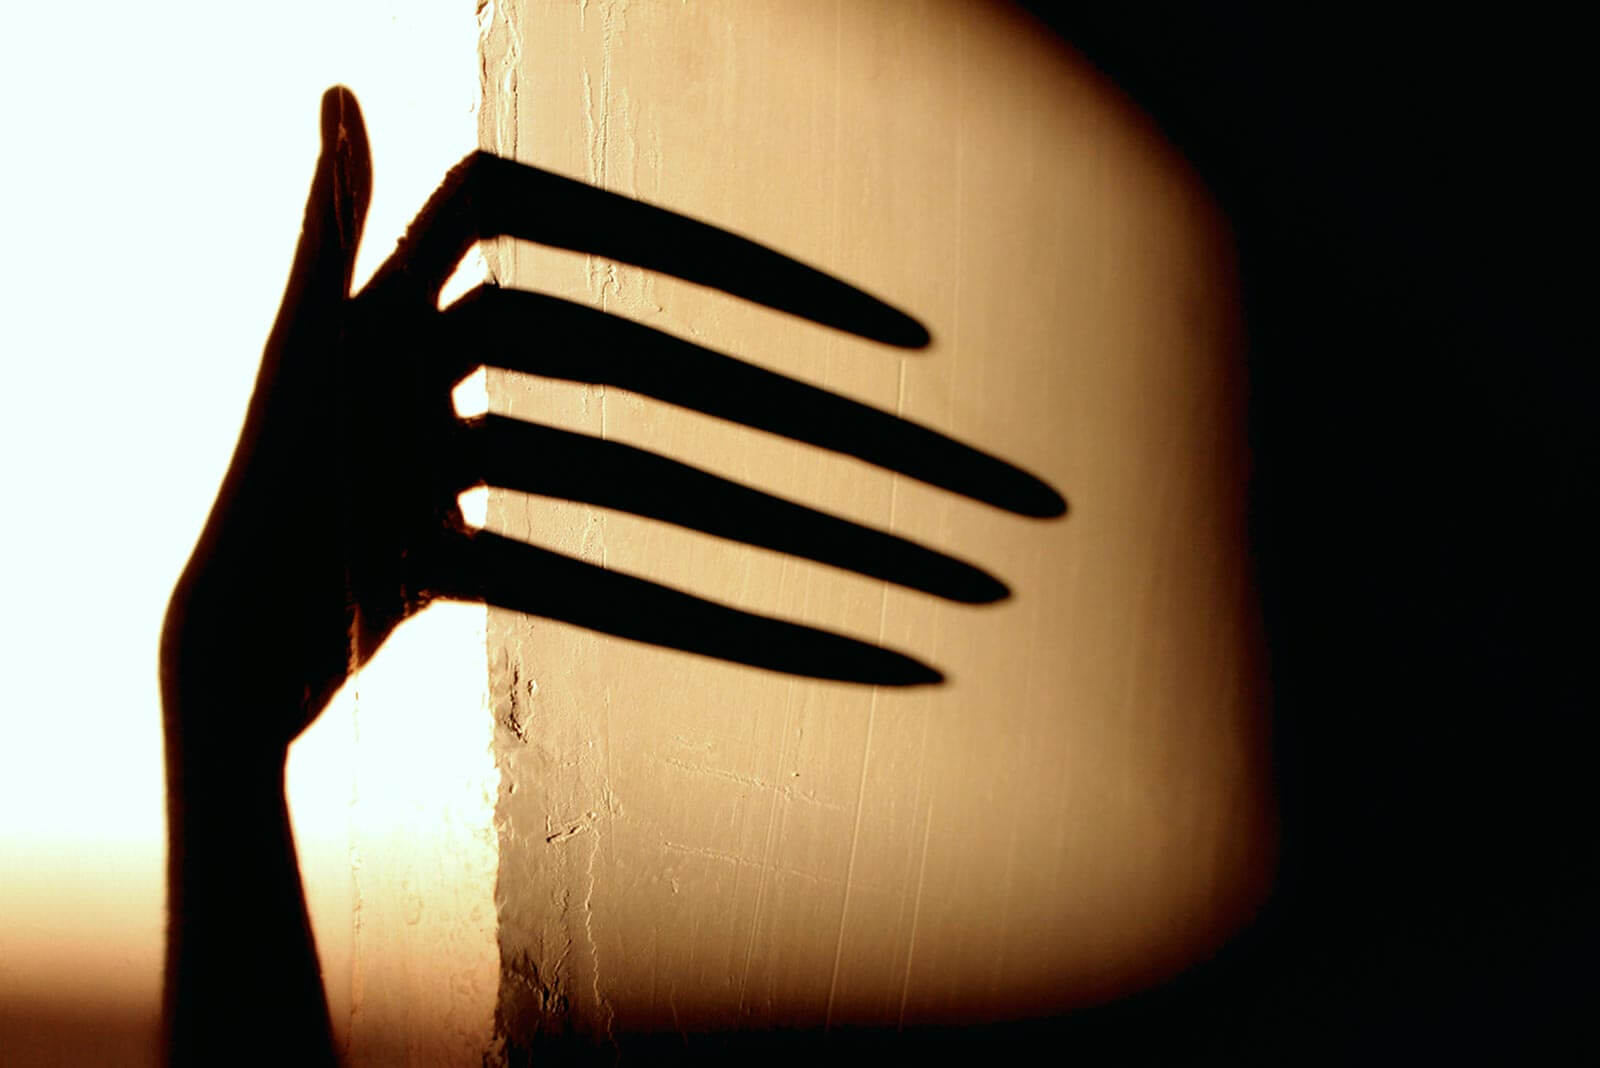 Shadow of a hand on a wall